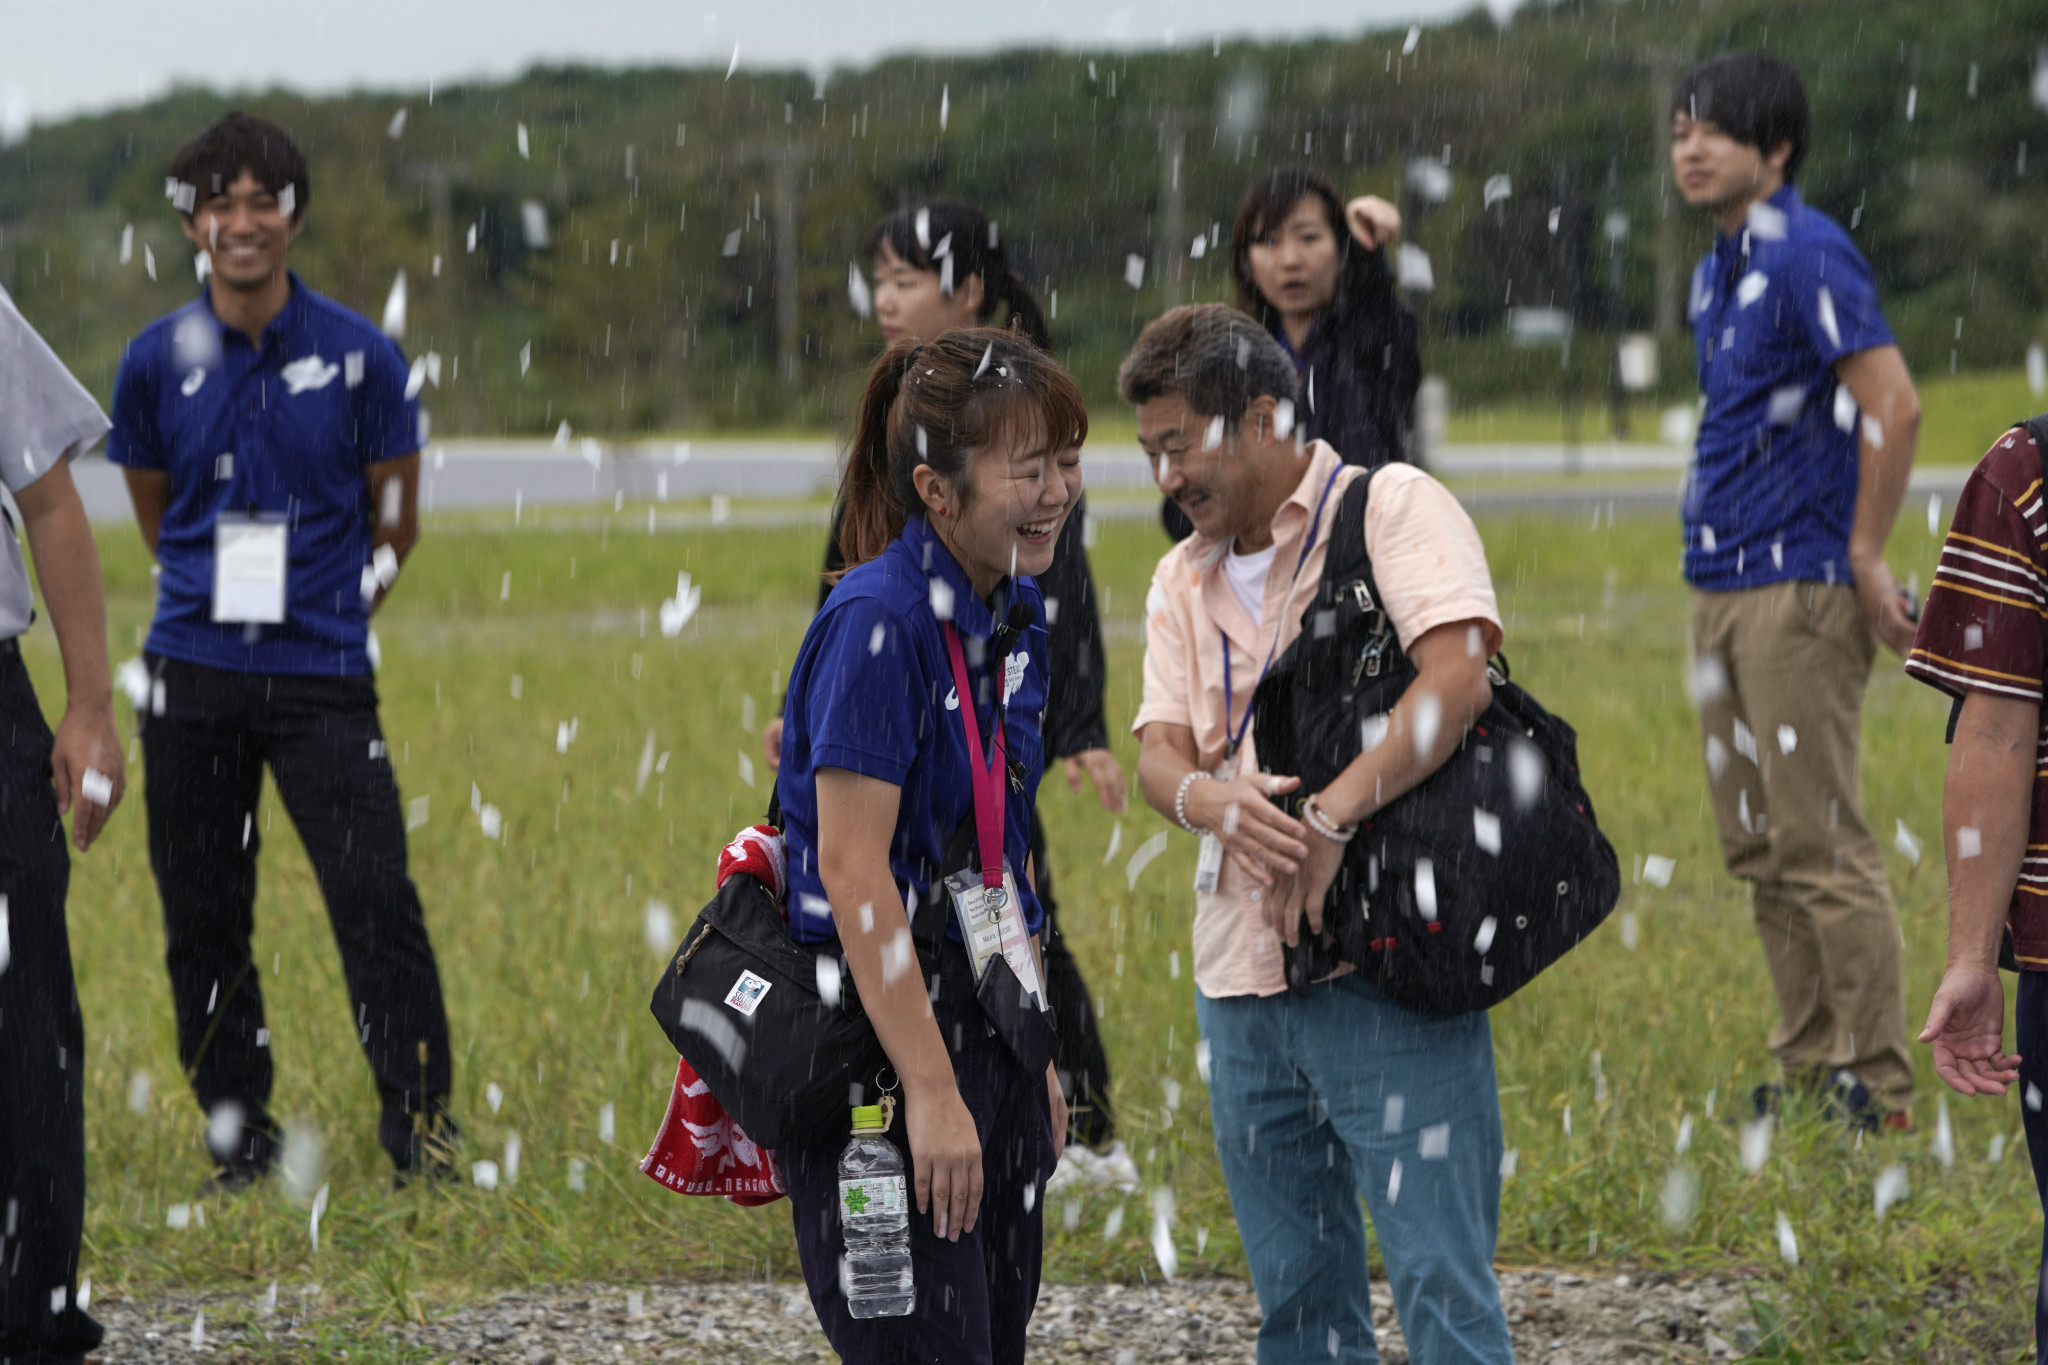 Tokyo 2020 will present a report with heat countermeasures expected to be discussed ©Getty Images